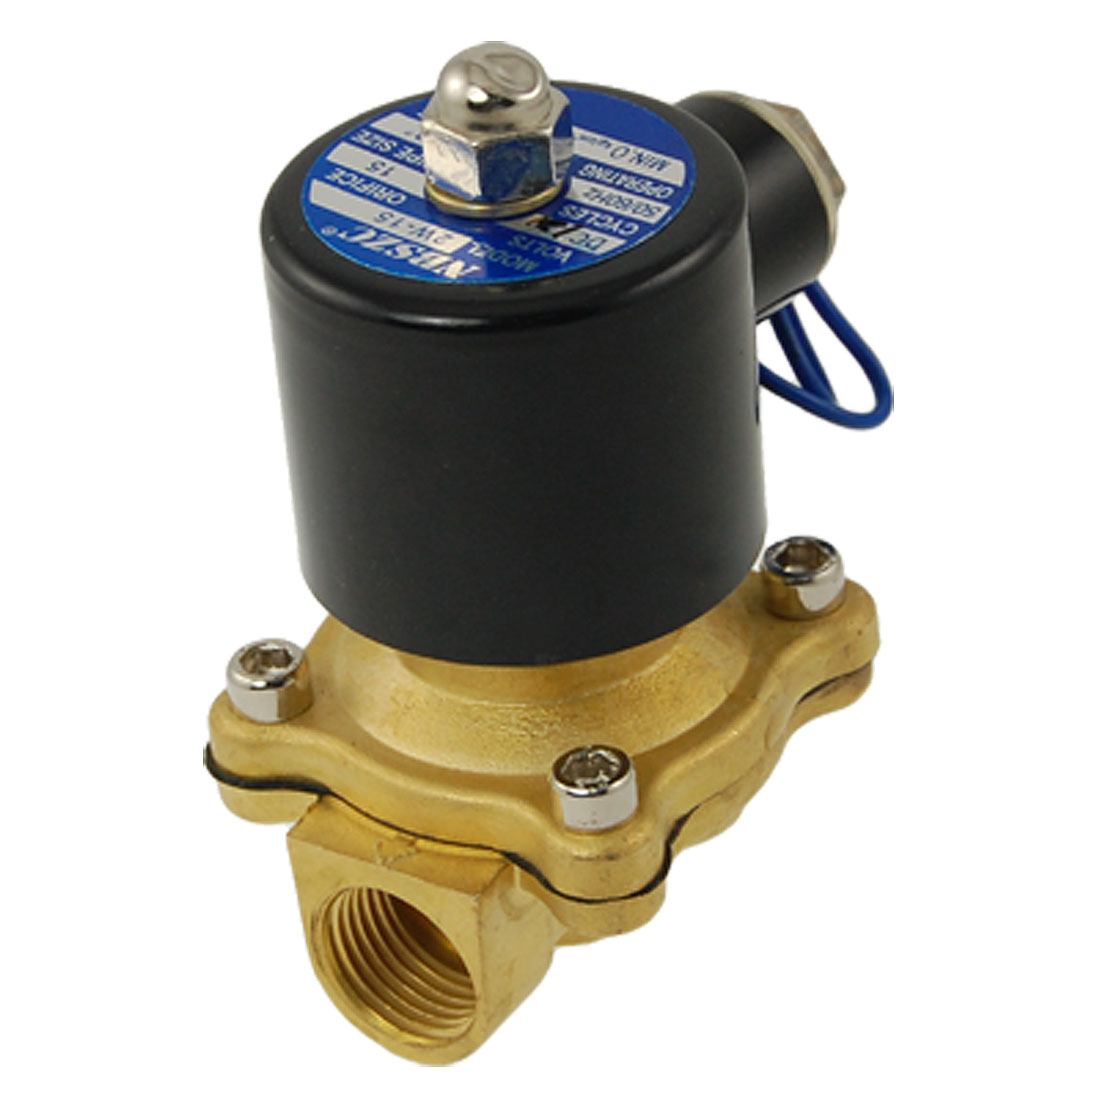 2W-160-15 1/2BSP Female Thread 2 Way 2 Position DC 12V Water Gas Solenoid Valve